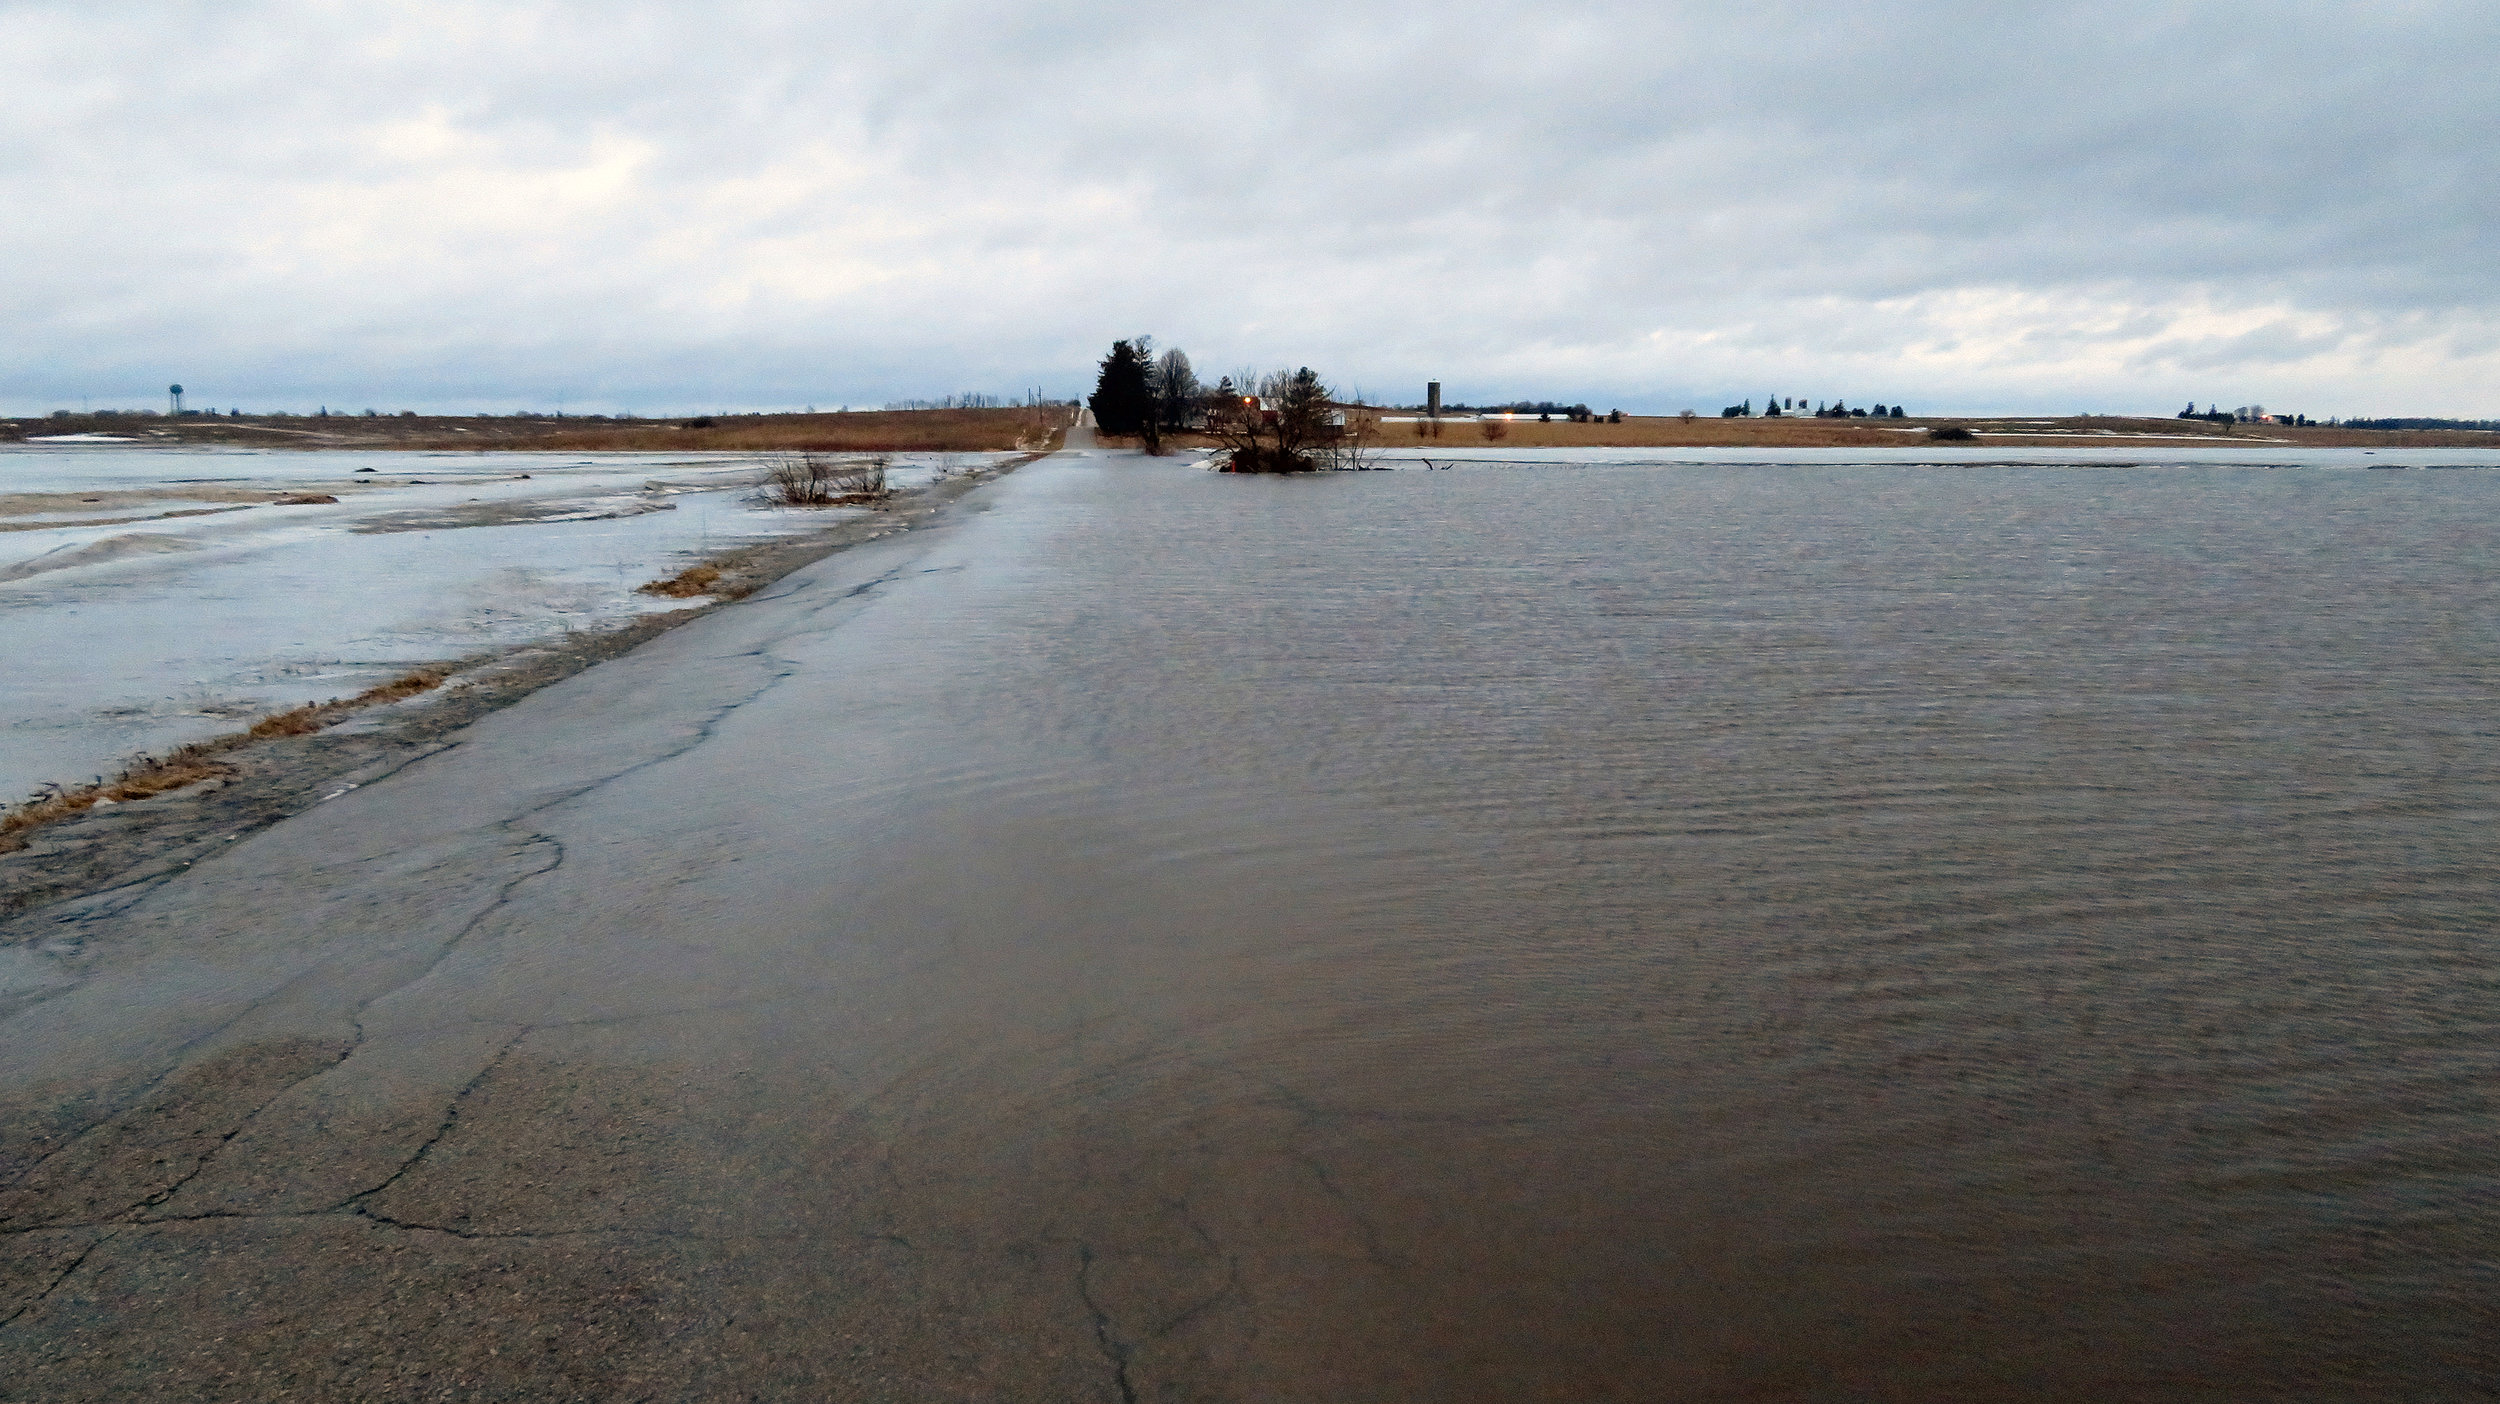 Above: Goose Pond Road (looking north towards Arlington).  The road is covered by up to three inches of water for almost 1,000 feet. The dark mound to the right (east) of Goose Pond Road is the rock pile. The pull off next to the rock pile is where many people bird watch from the Goose Pond Road causeway, and it is completely flooded.